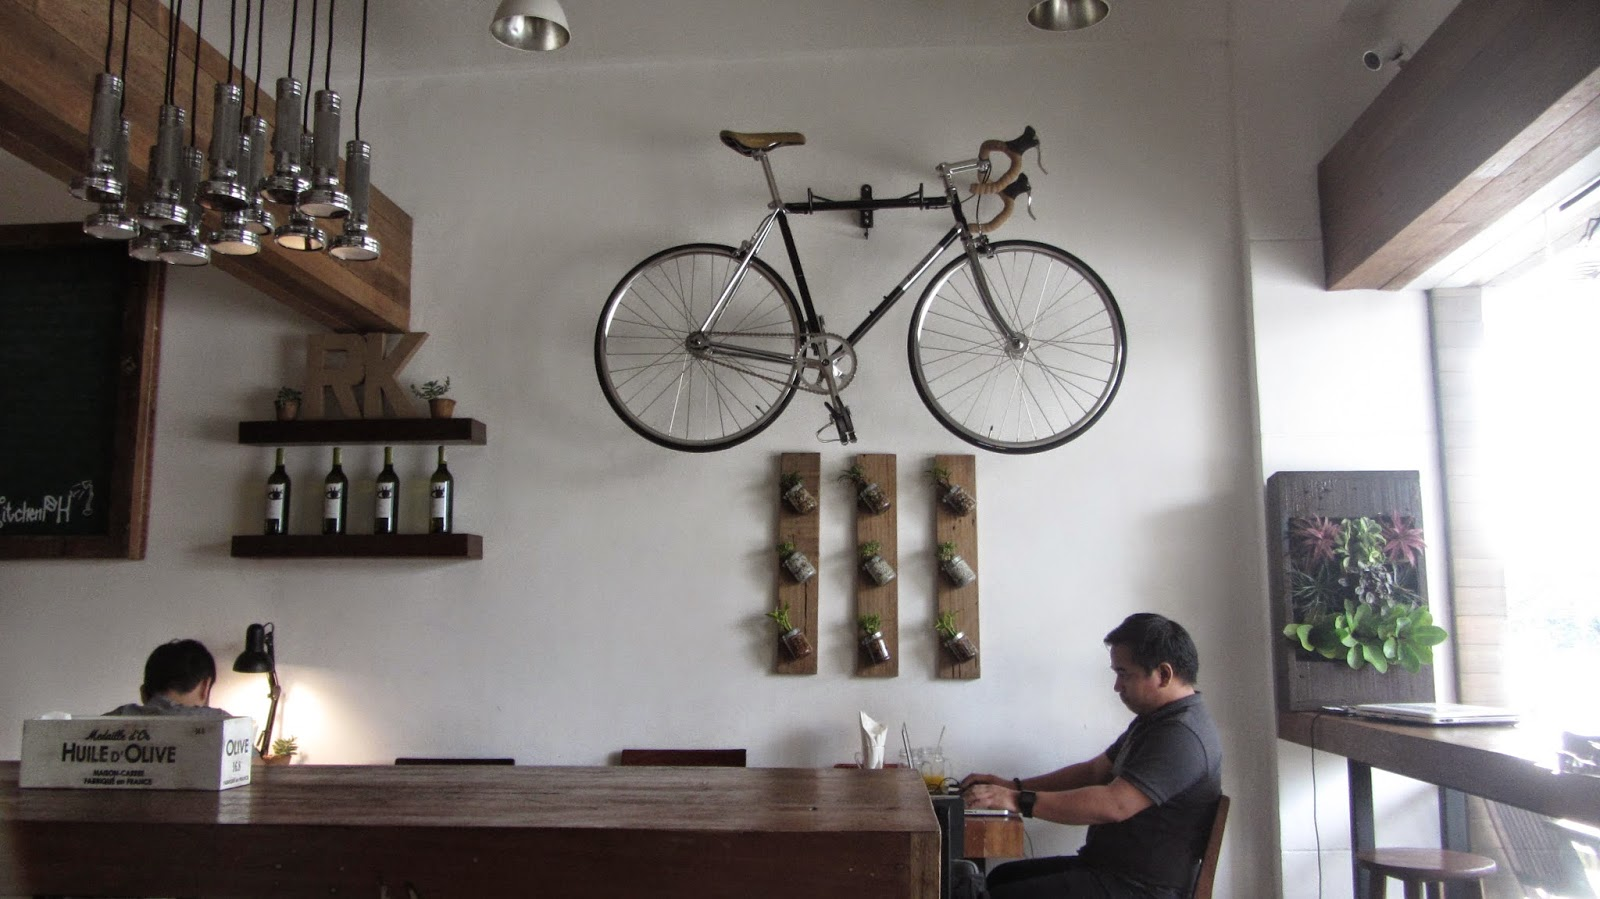 runners kitchen islands carts runner s at tomas morato avenue walkandeat i like the whimsical decor with a bike lording over dining area